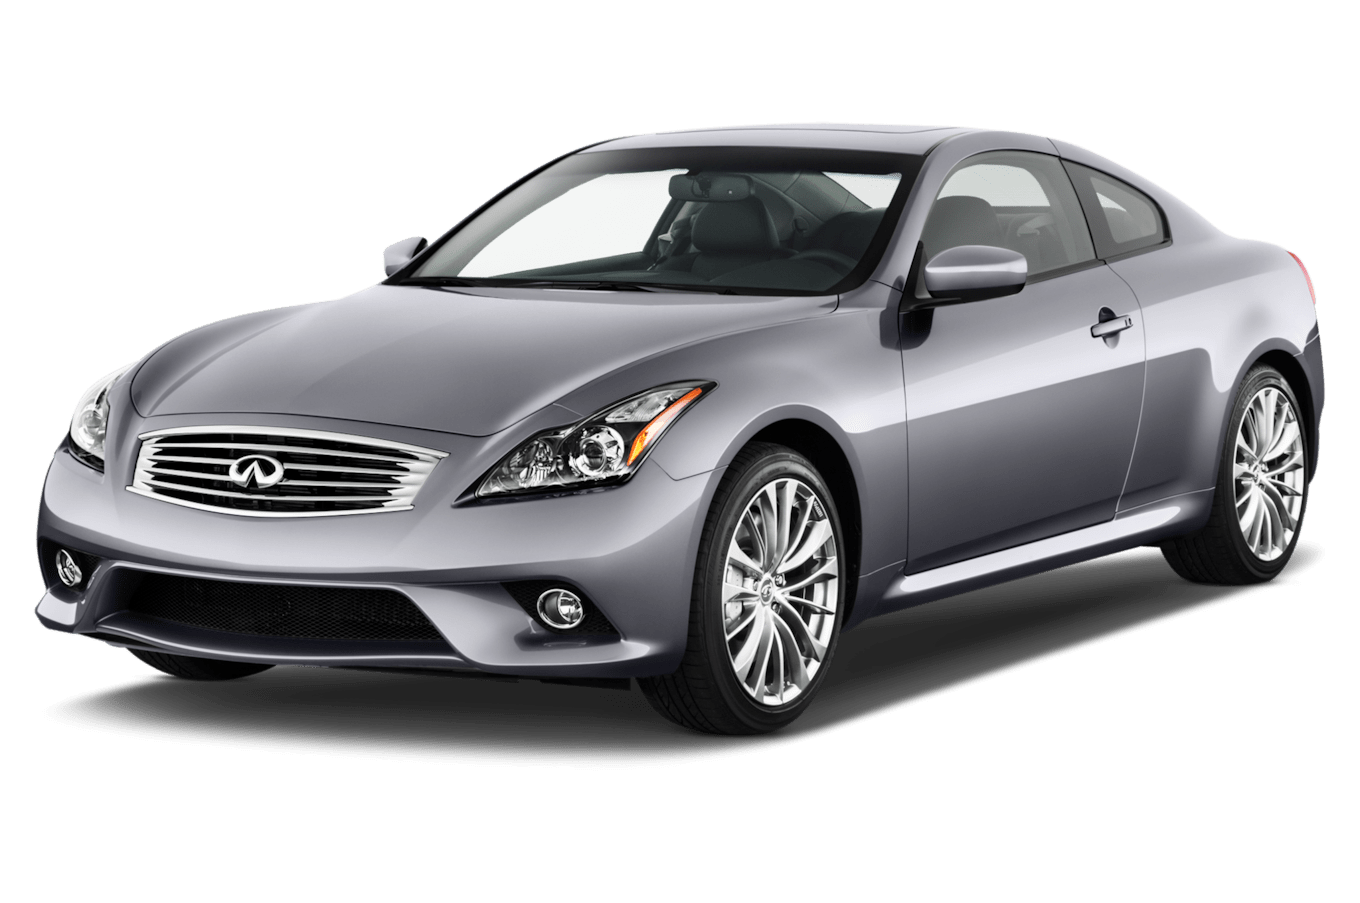 hight resolution of 2010 infiniti g37 reviews and rating motor trend 1 75